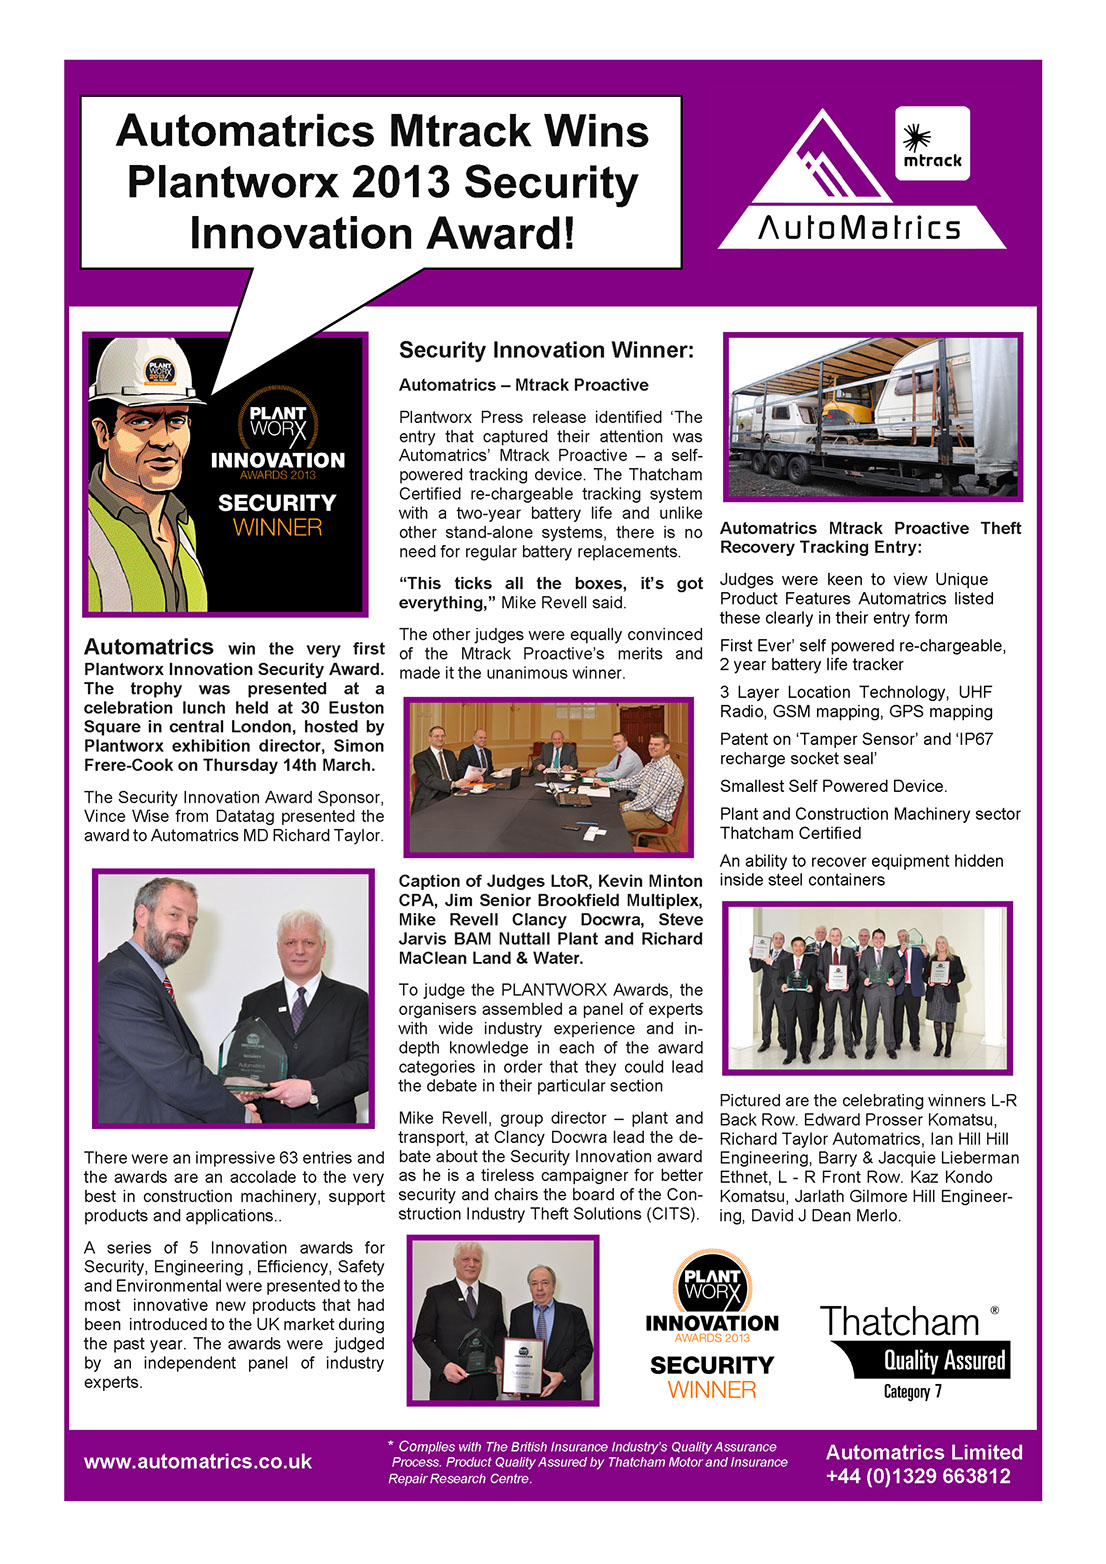 Automatrics MTrack Proactive Wins Plantworx Security Innovation Award 2013 Newsletter